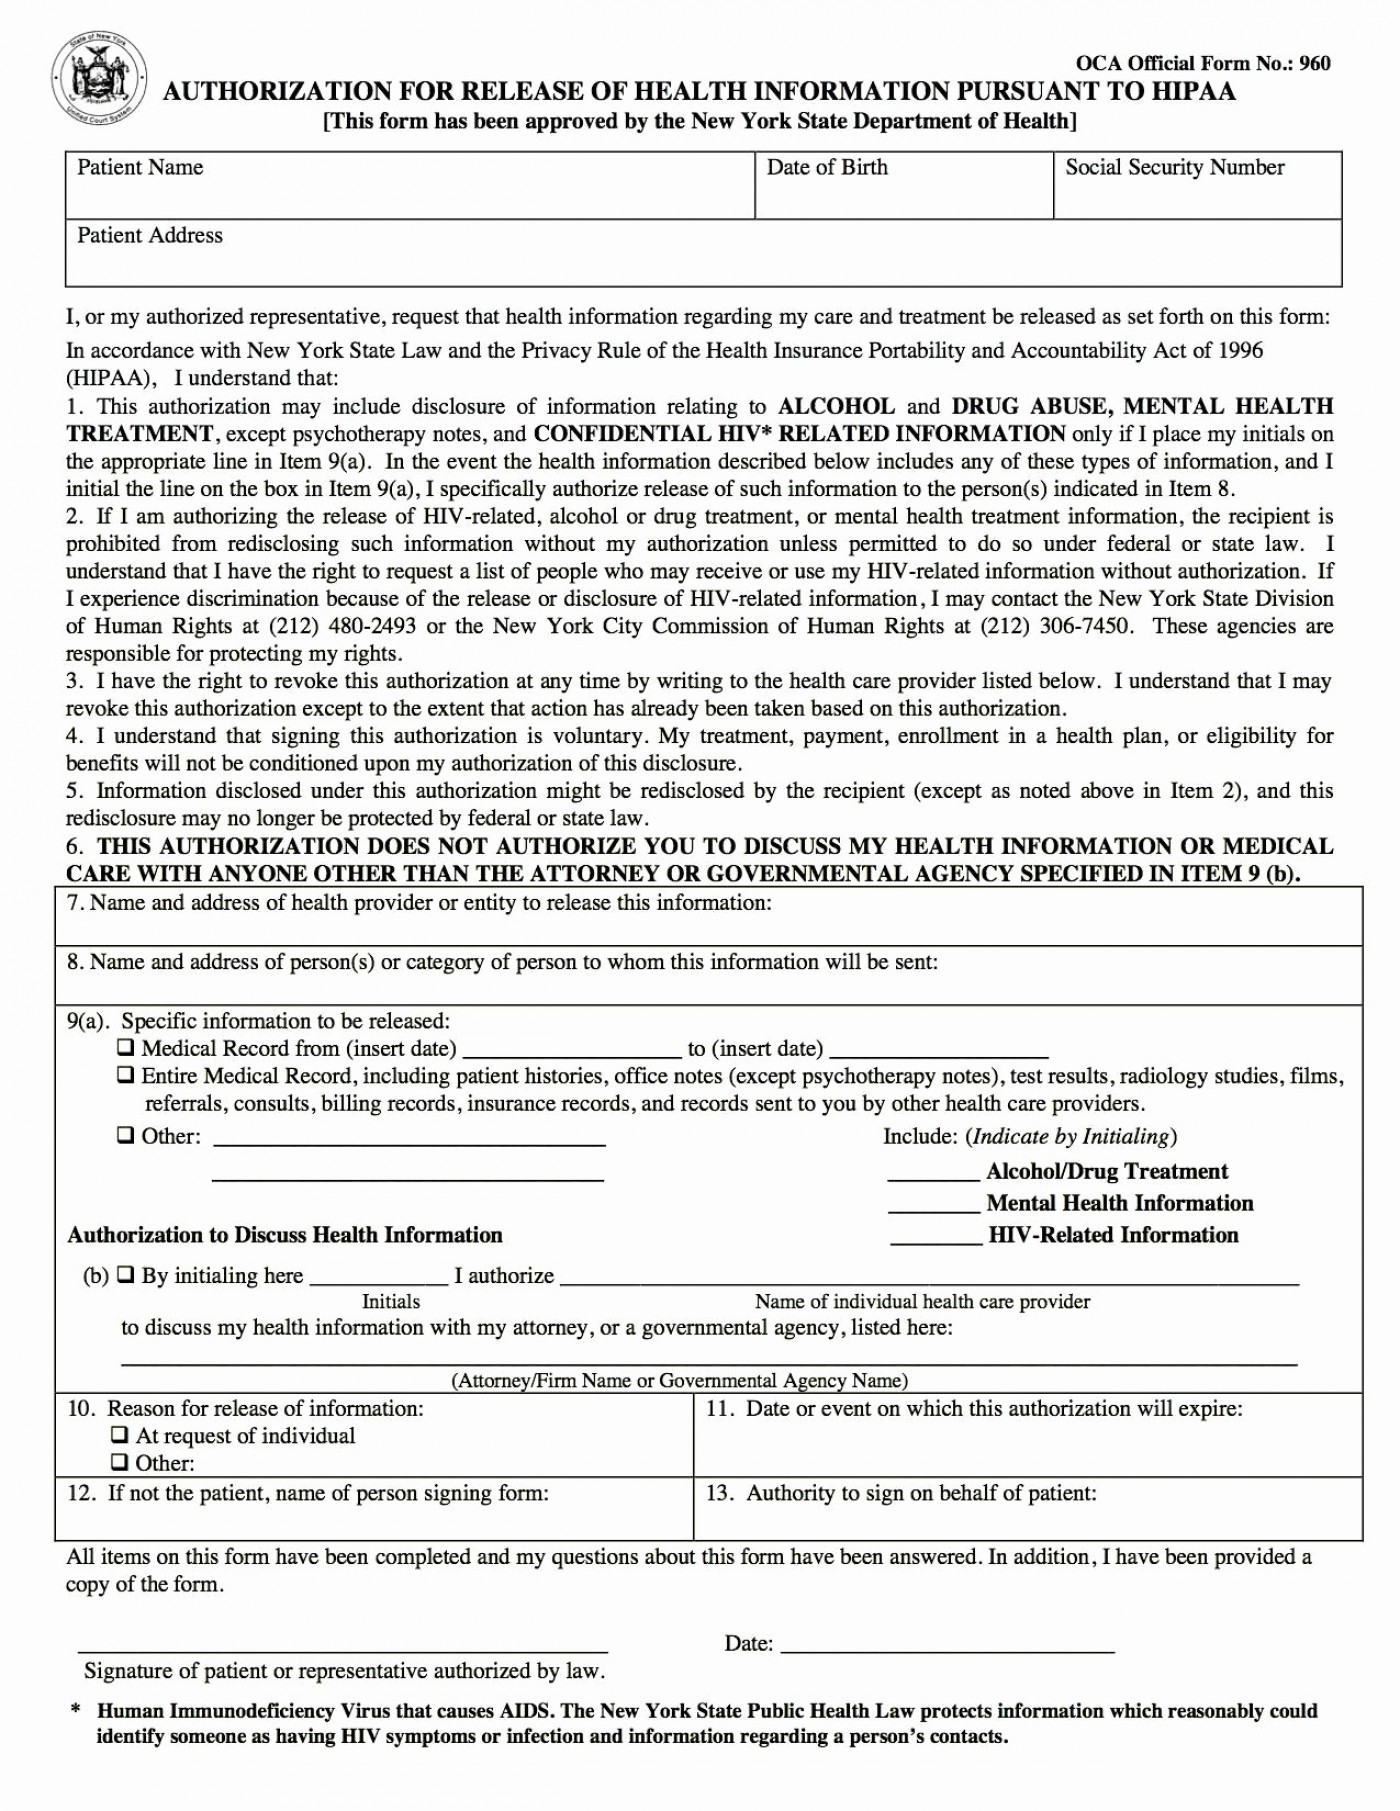 Hipaa Compliant Medical Release Form Texas